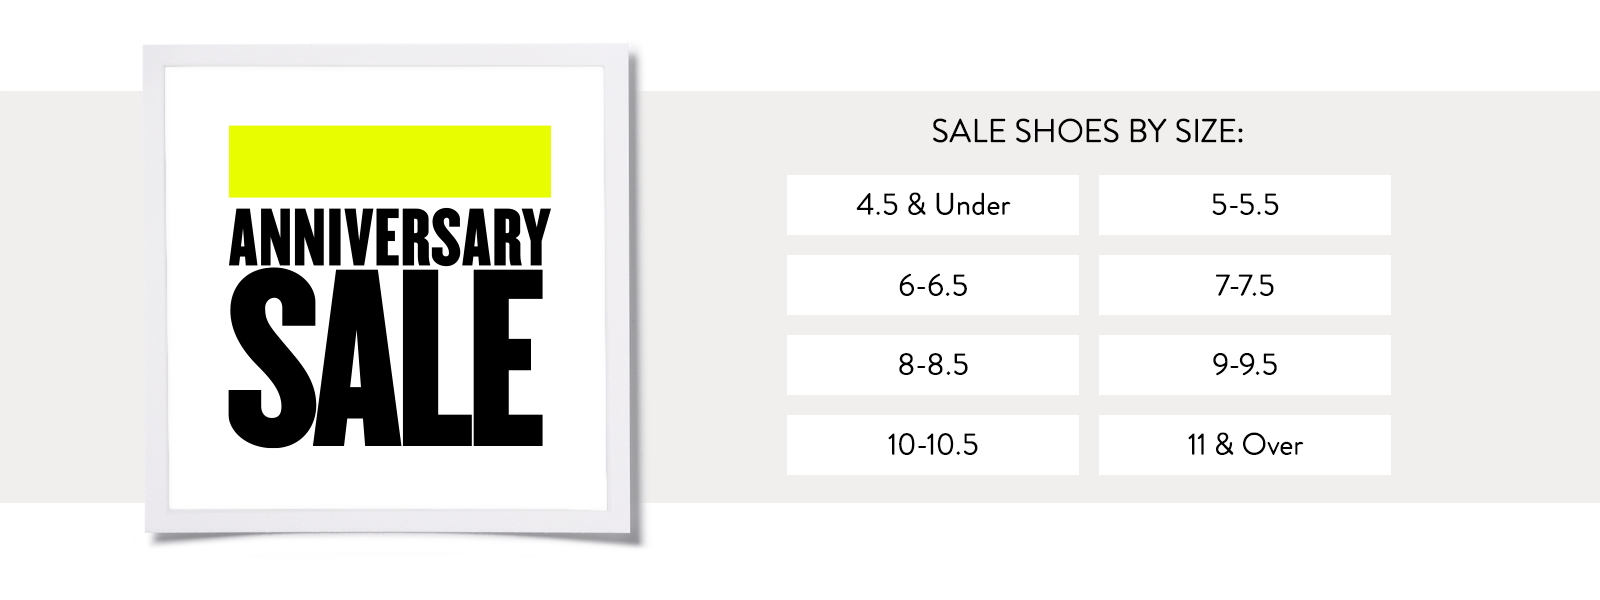 Anniversary Sale Shoes by Size